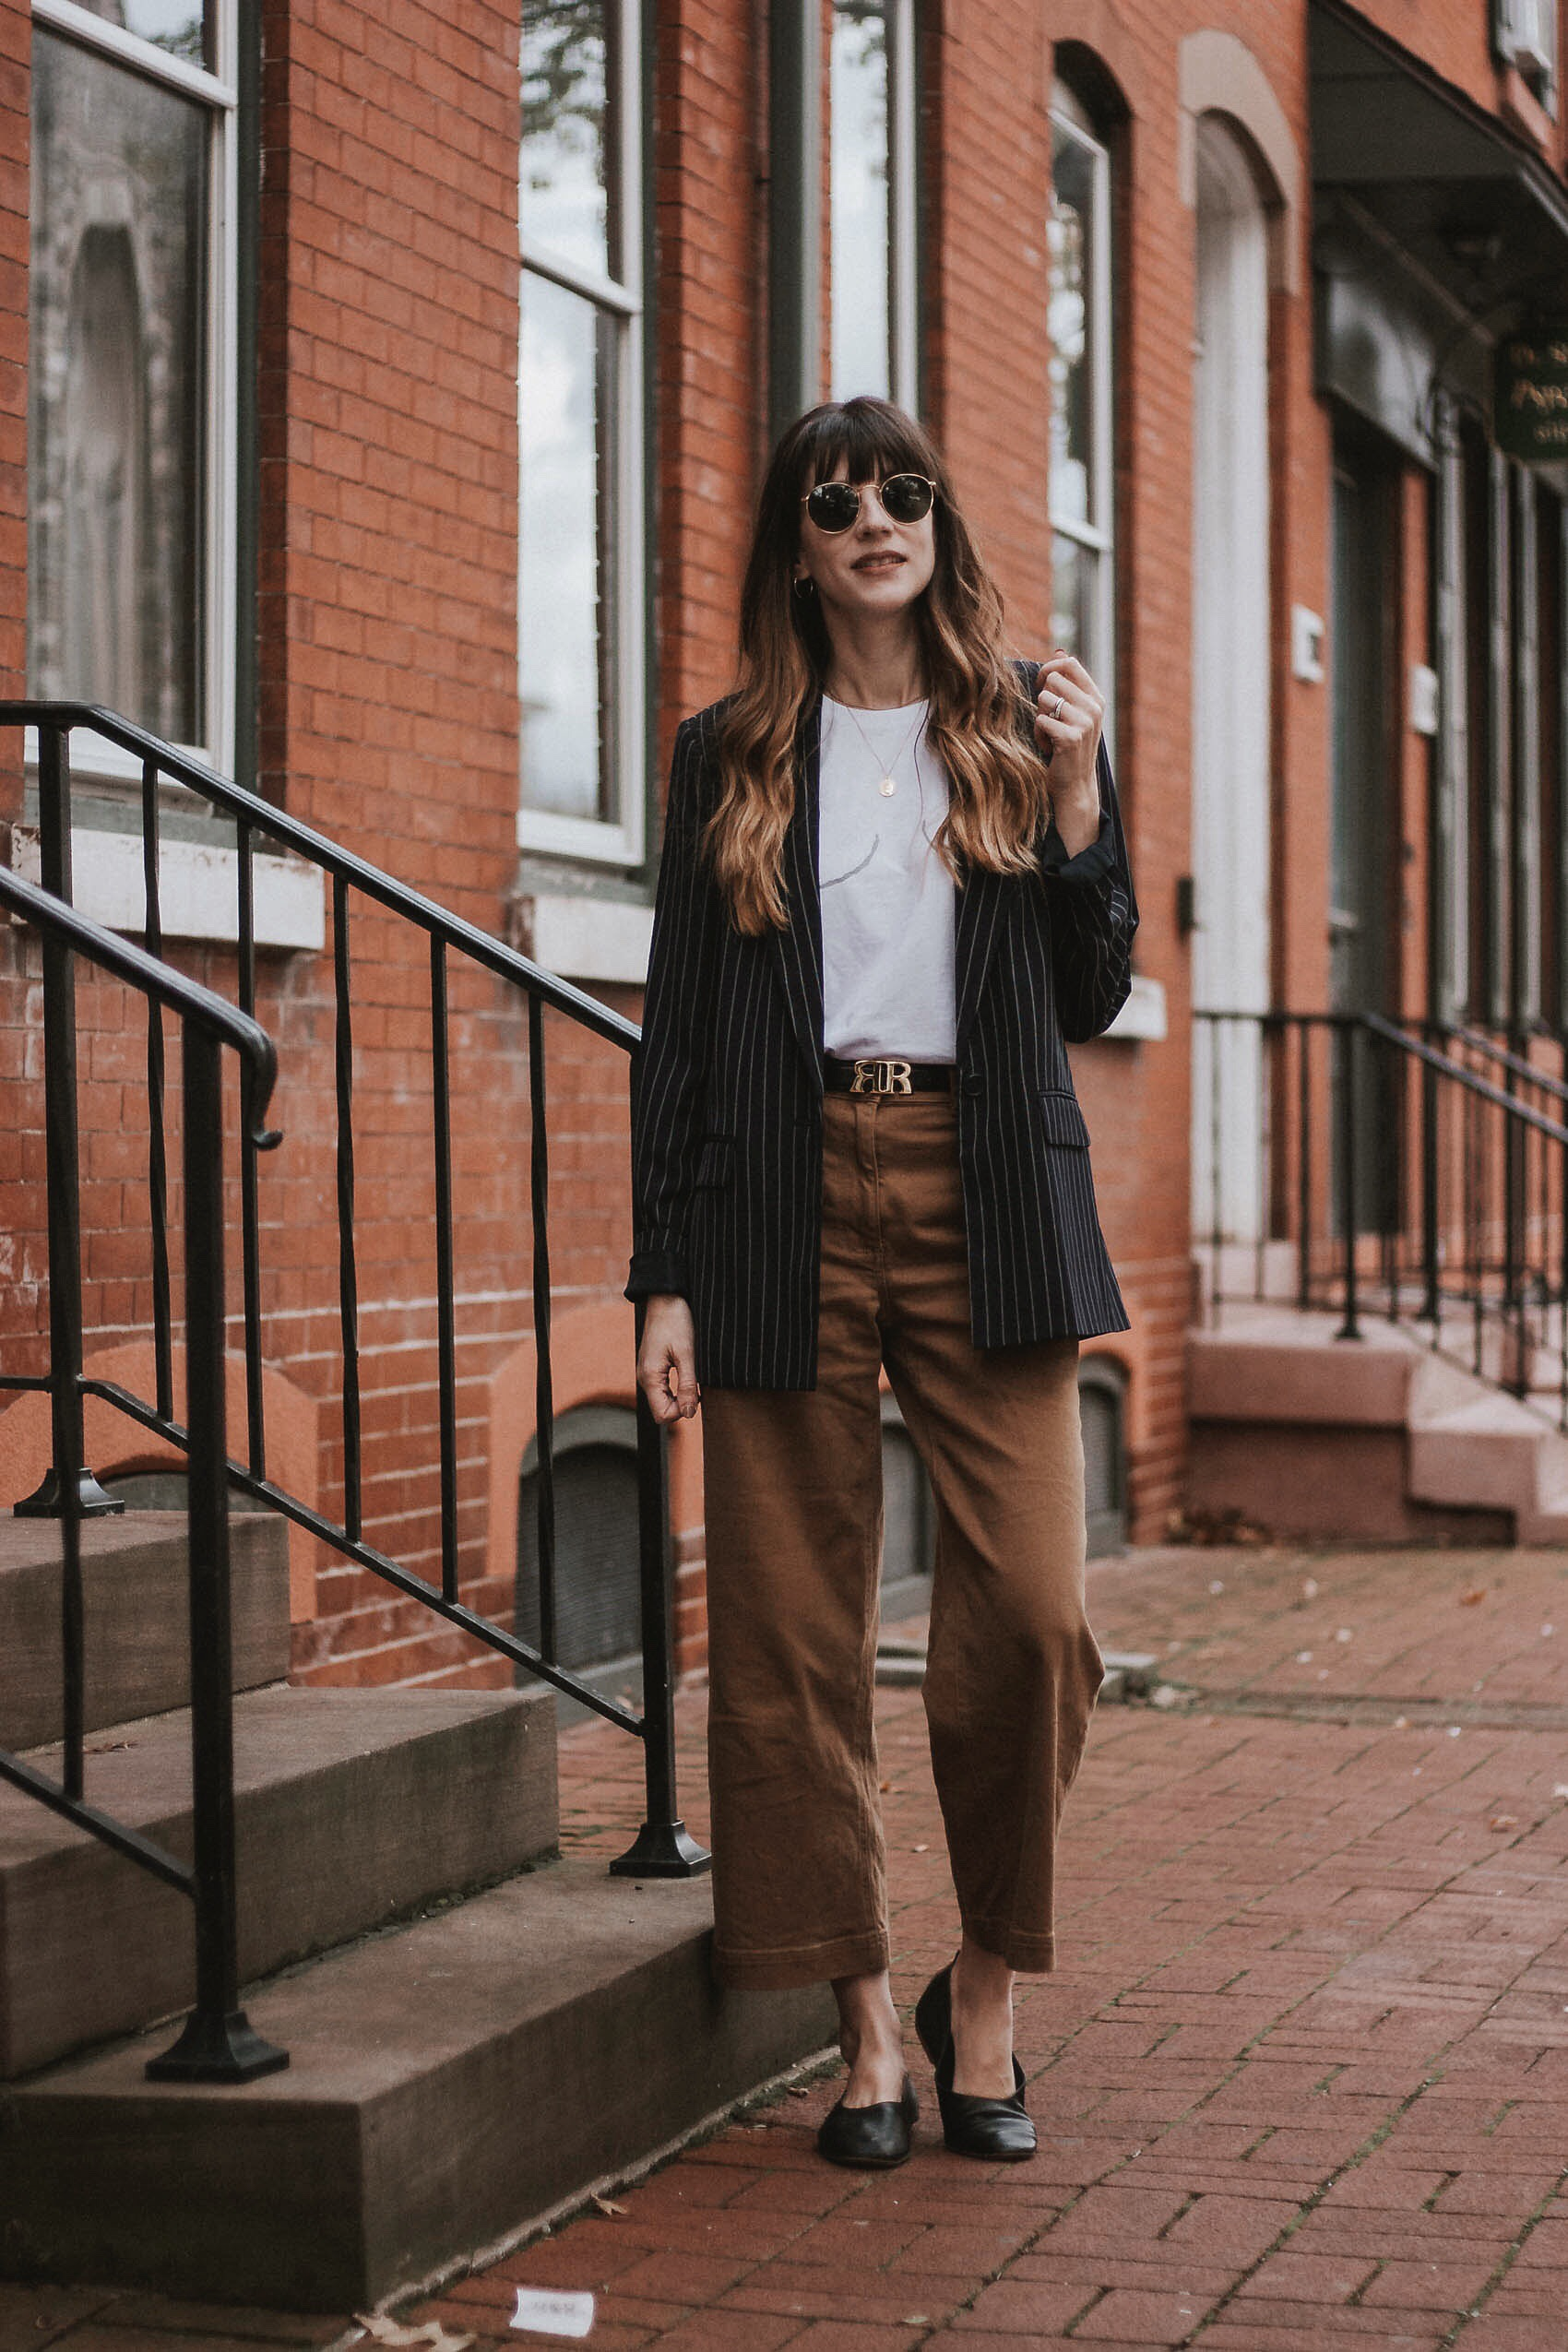 Menswear inspired look featuring Everlane pants and target blazer